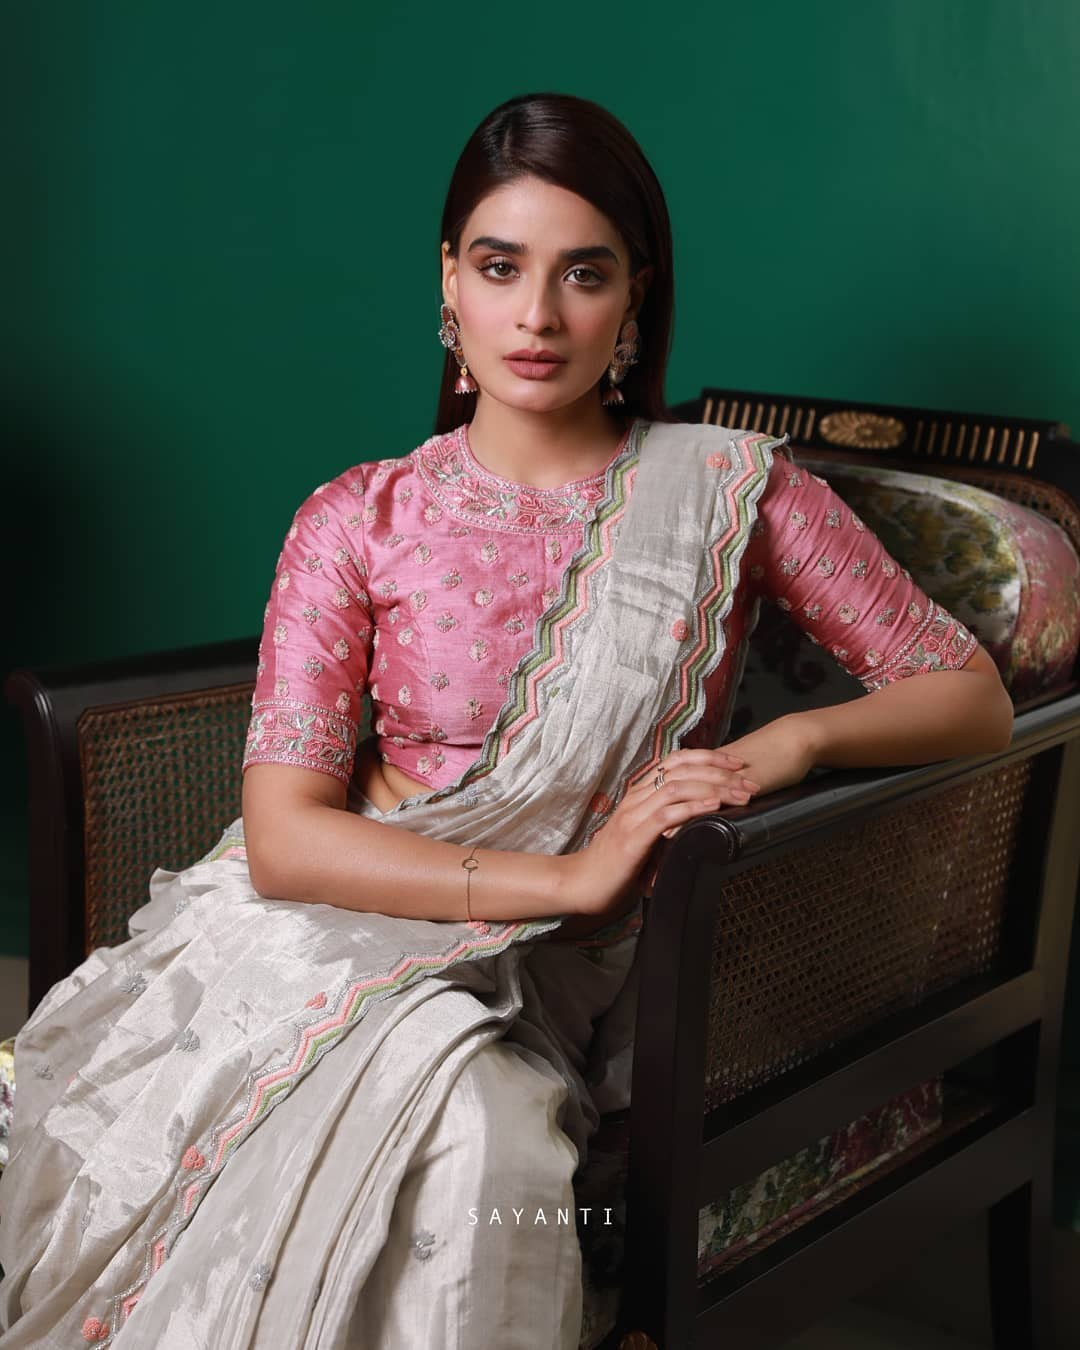 Pink embroidered blouse-Sayanti Ghosh